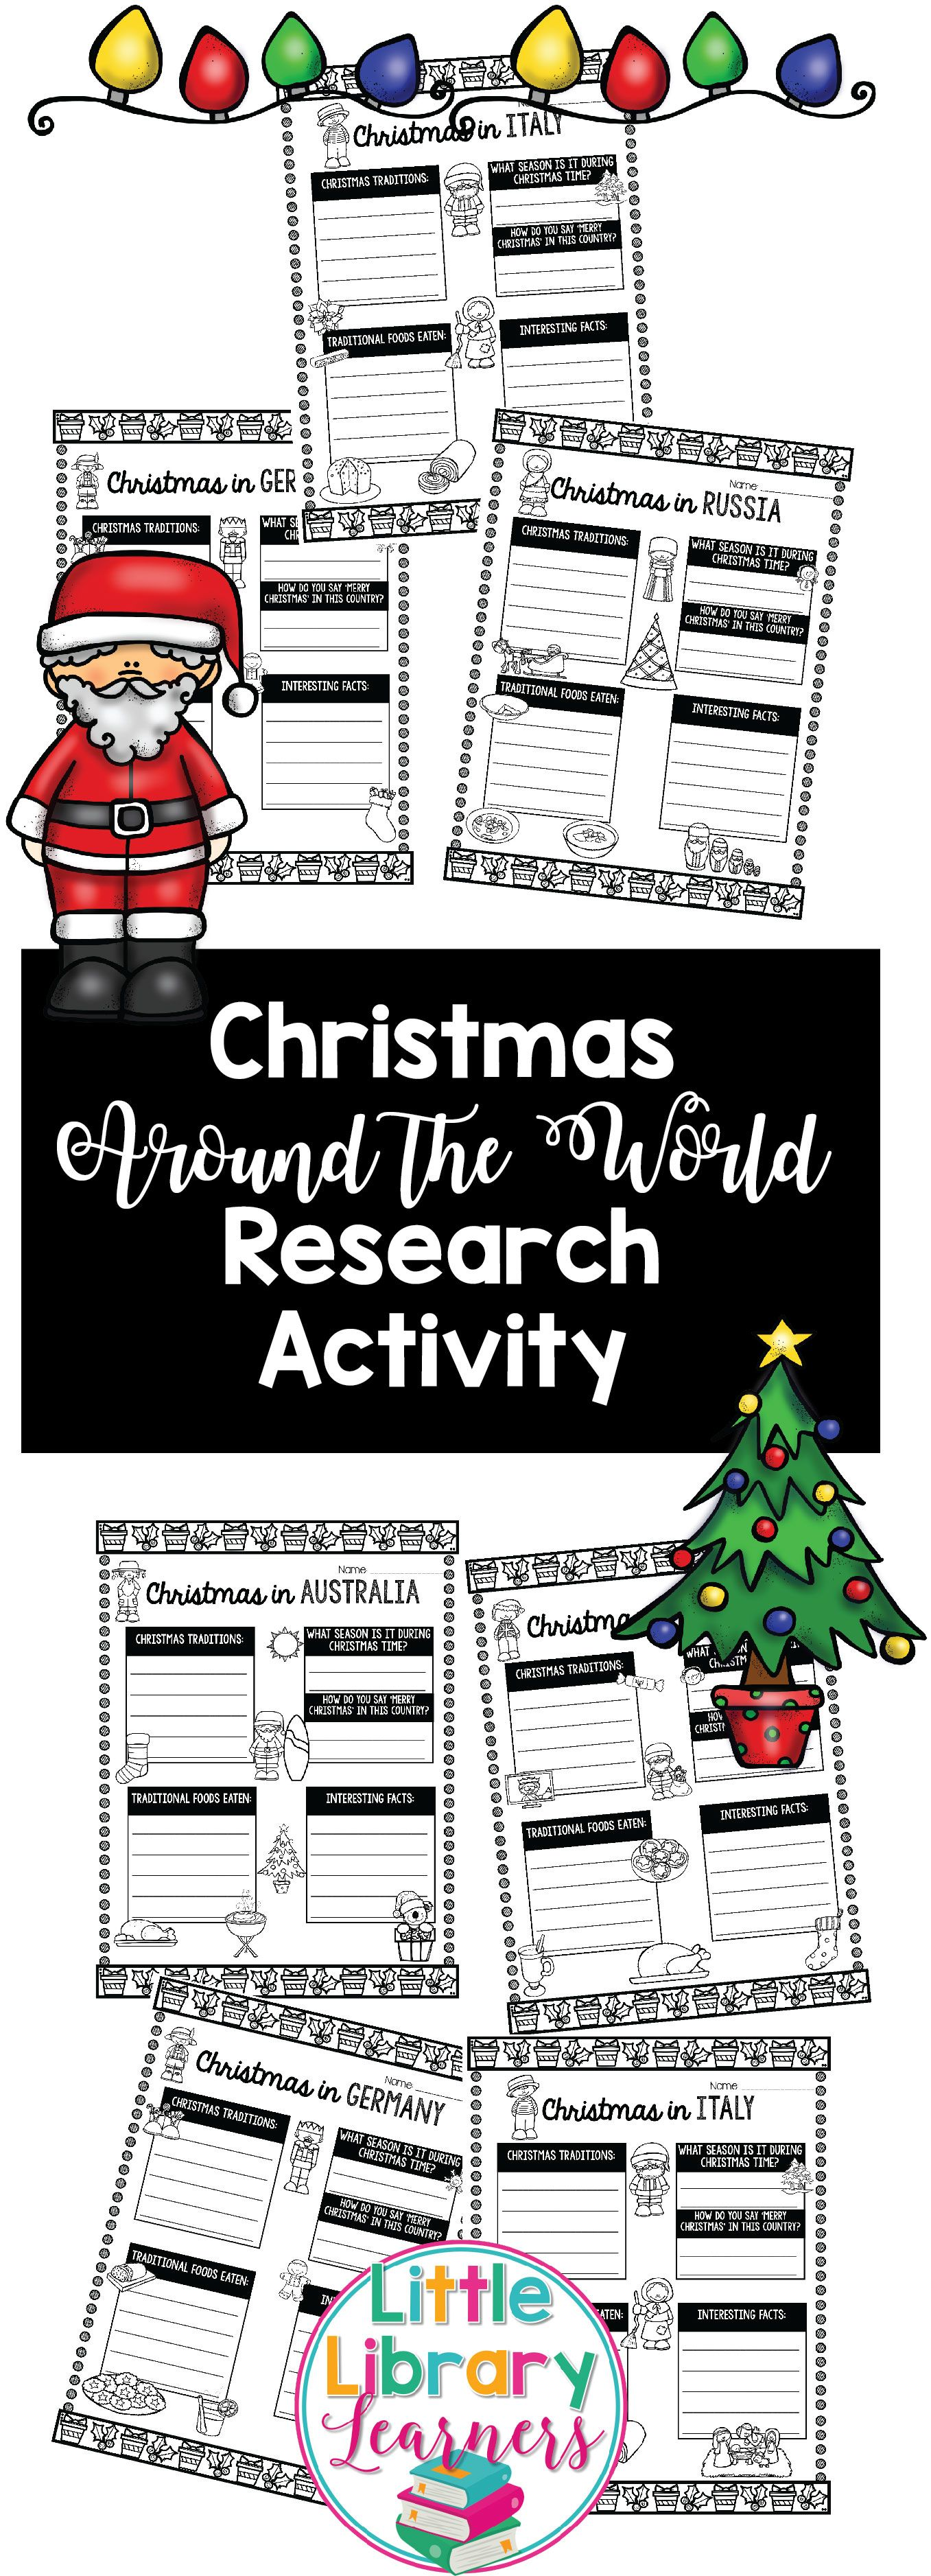 Library Research Activity Christmas Around The World